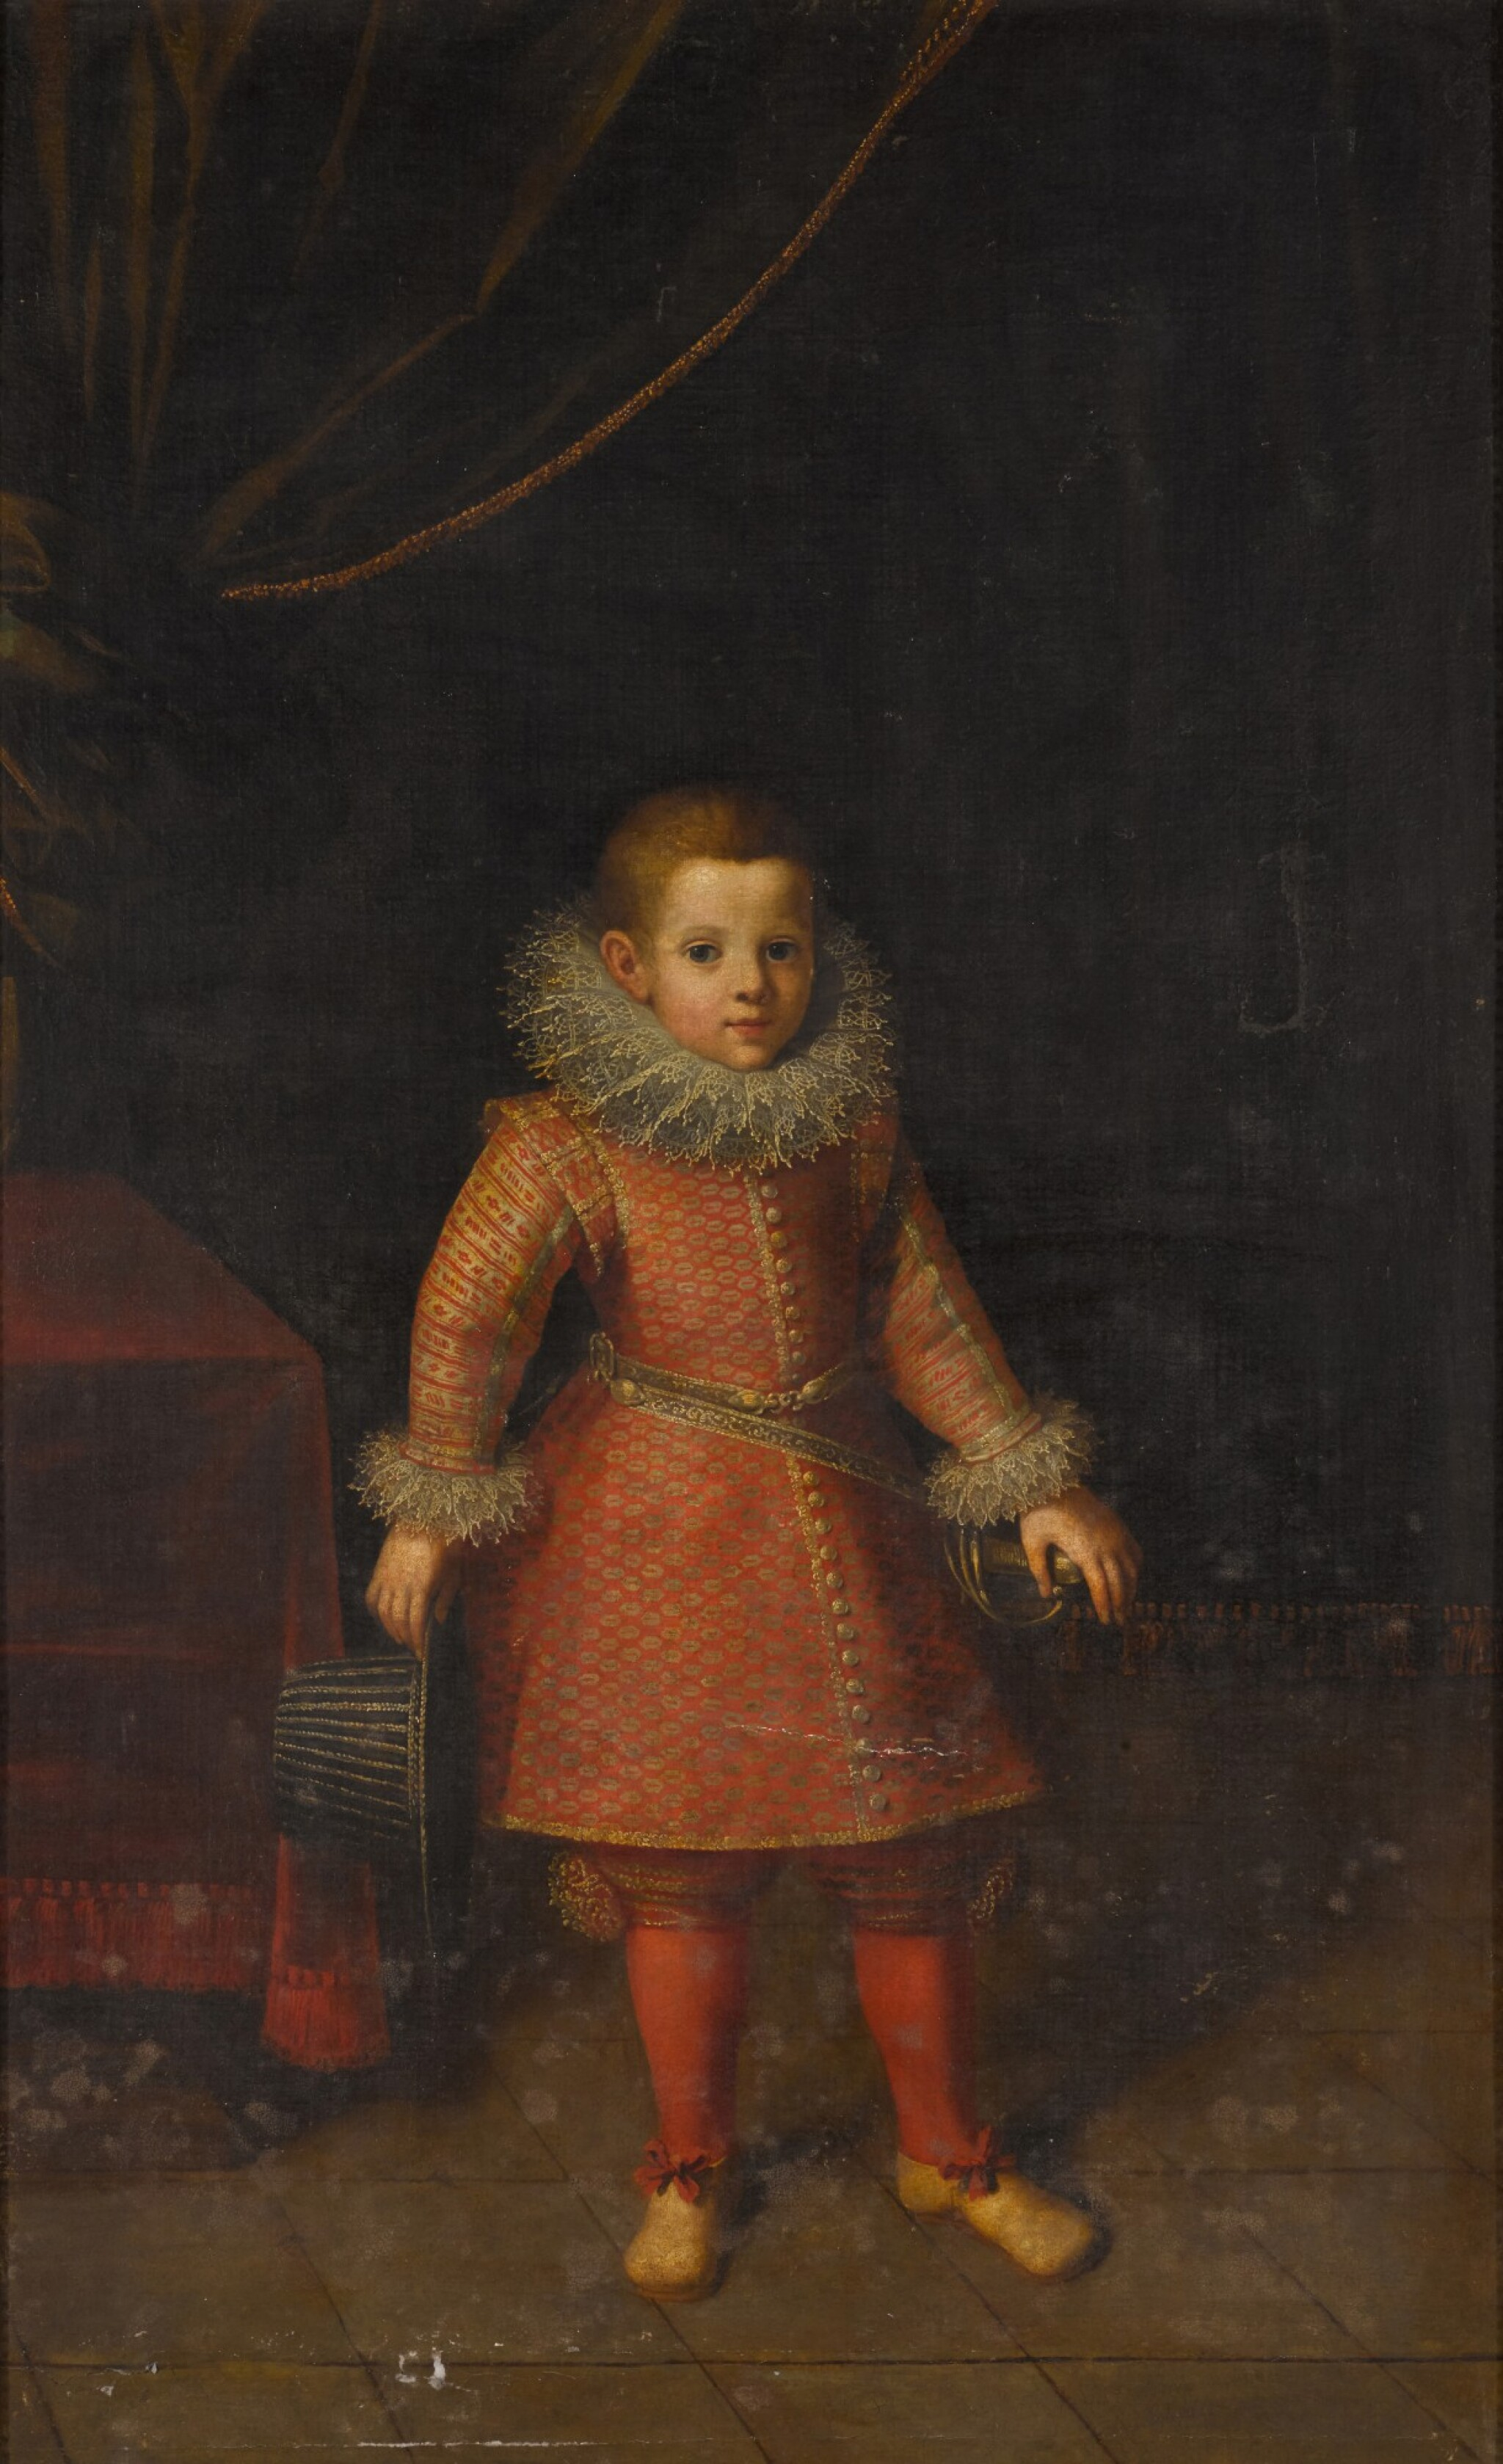 View full screen - View 1 of Lot 109. Portrait of a boy, said to be Juan Luis de la Cerda, 5th Duke of Medinaceli (1544-94), full-length, holding a hat in his right hand.